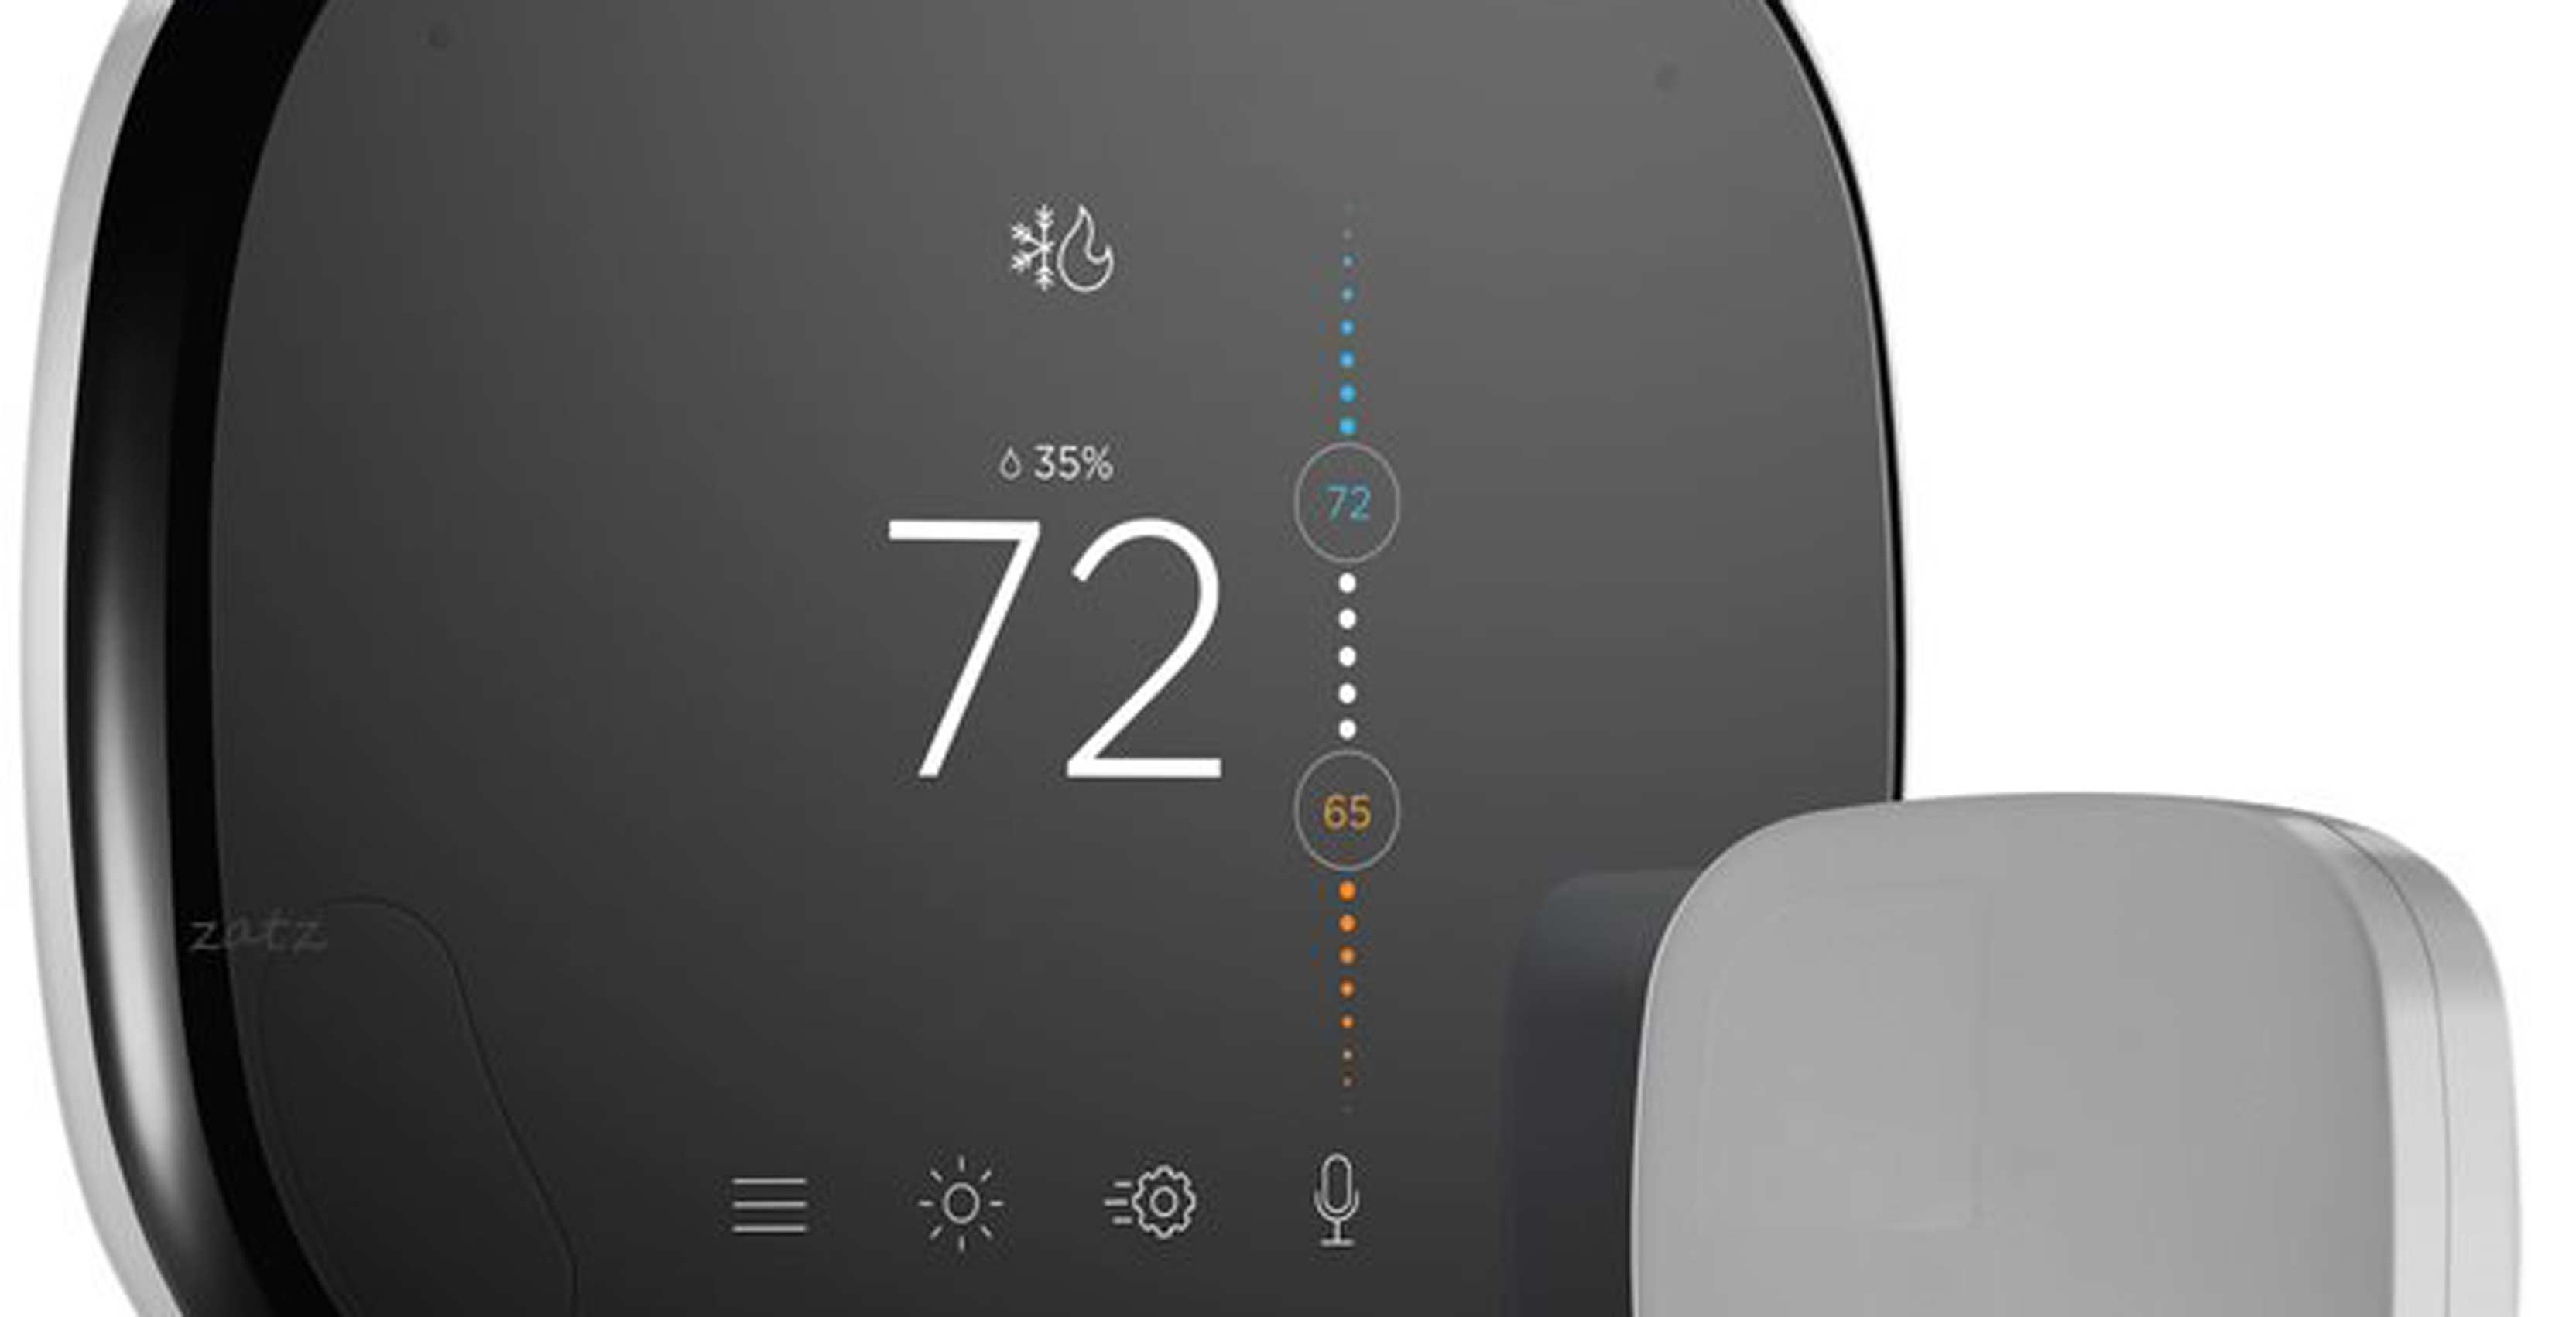 ecobee s new switch puts alexa in your light switch 2